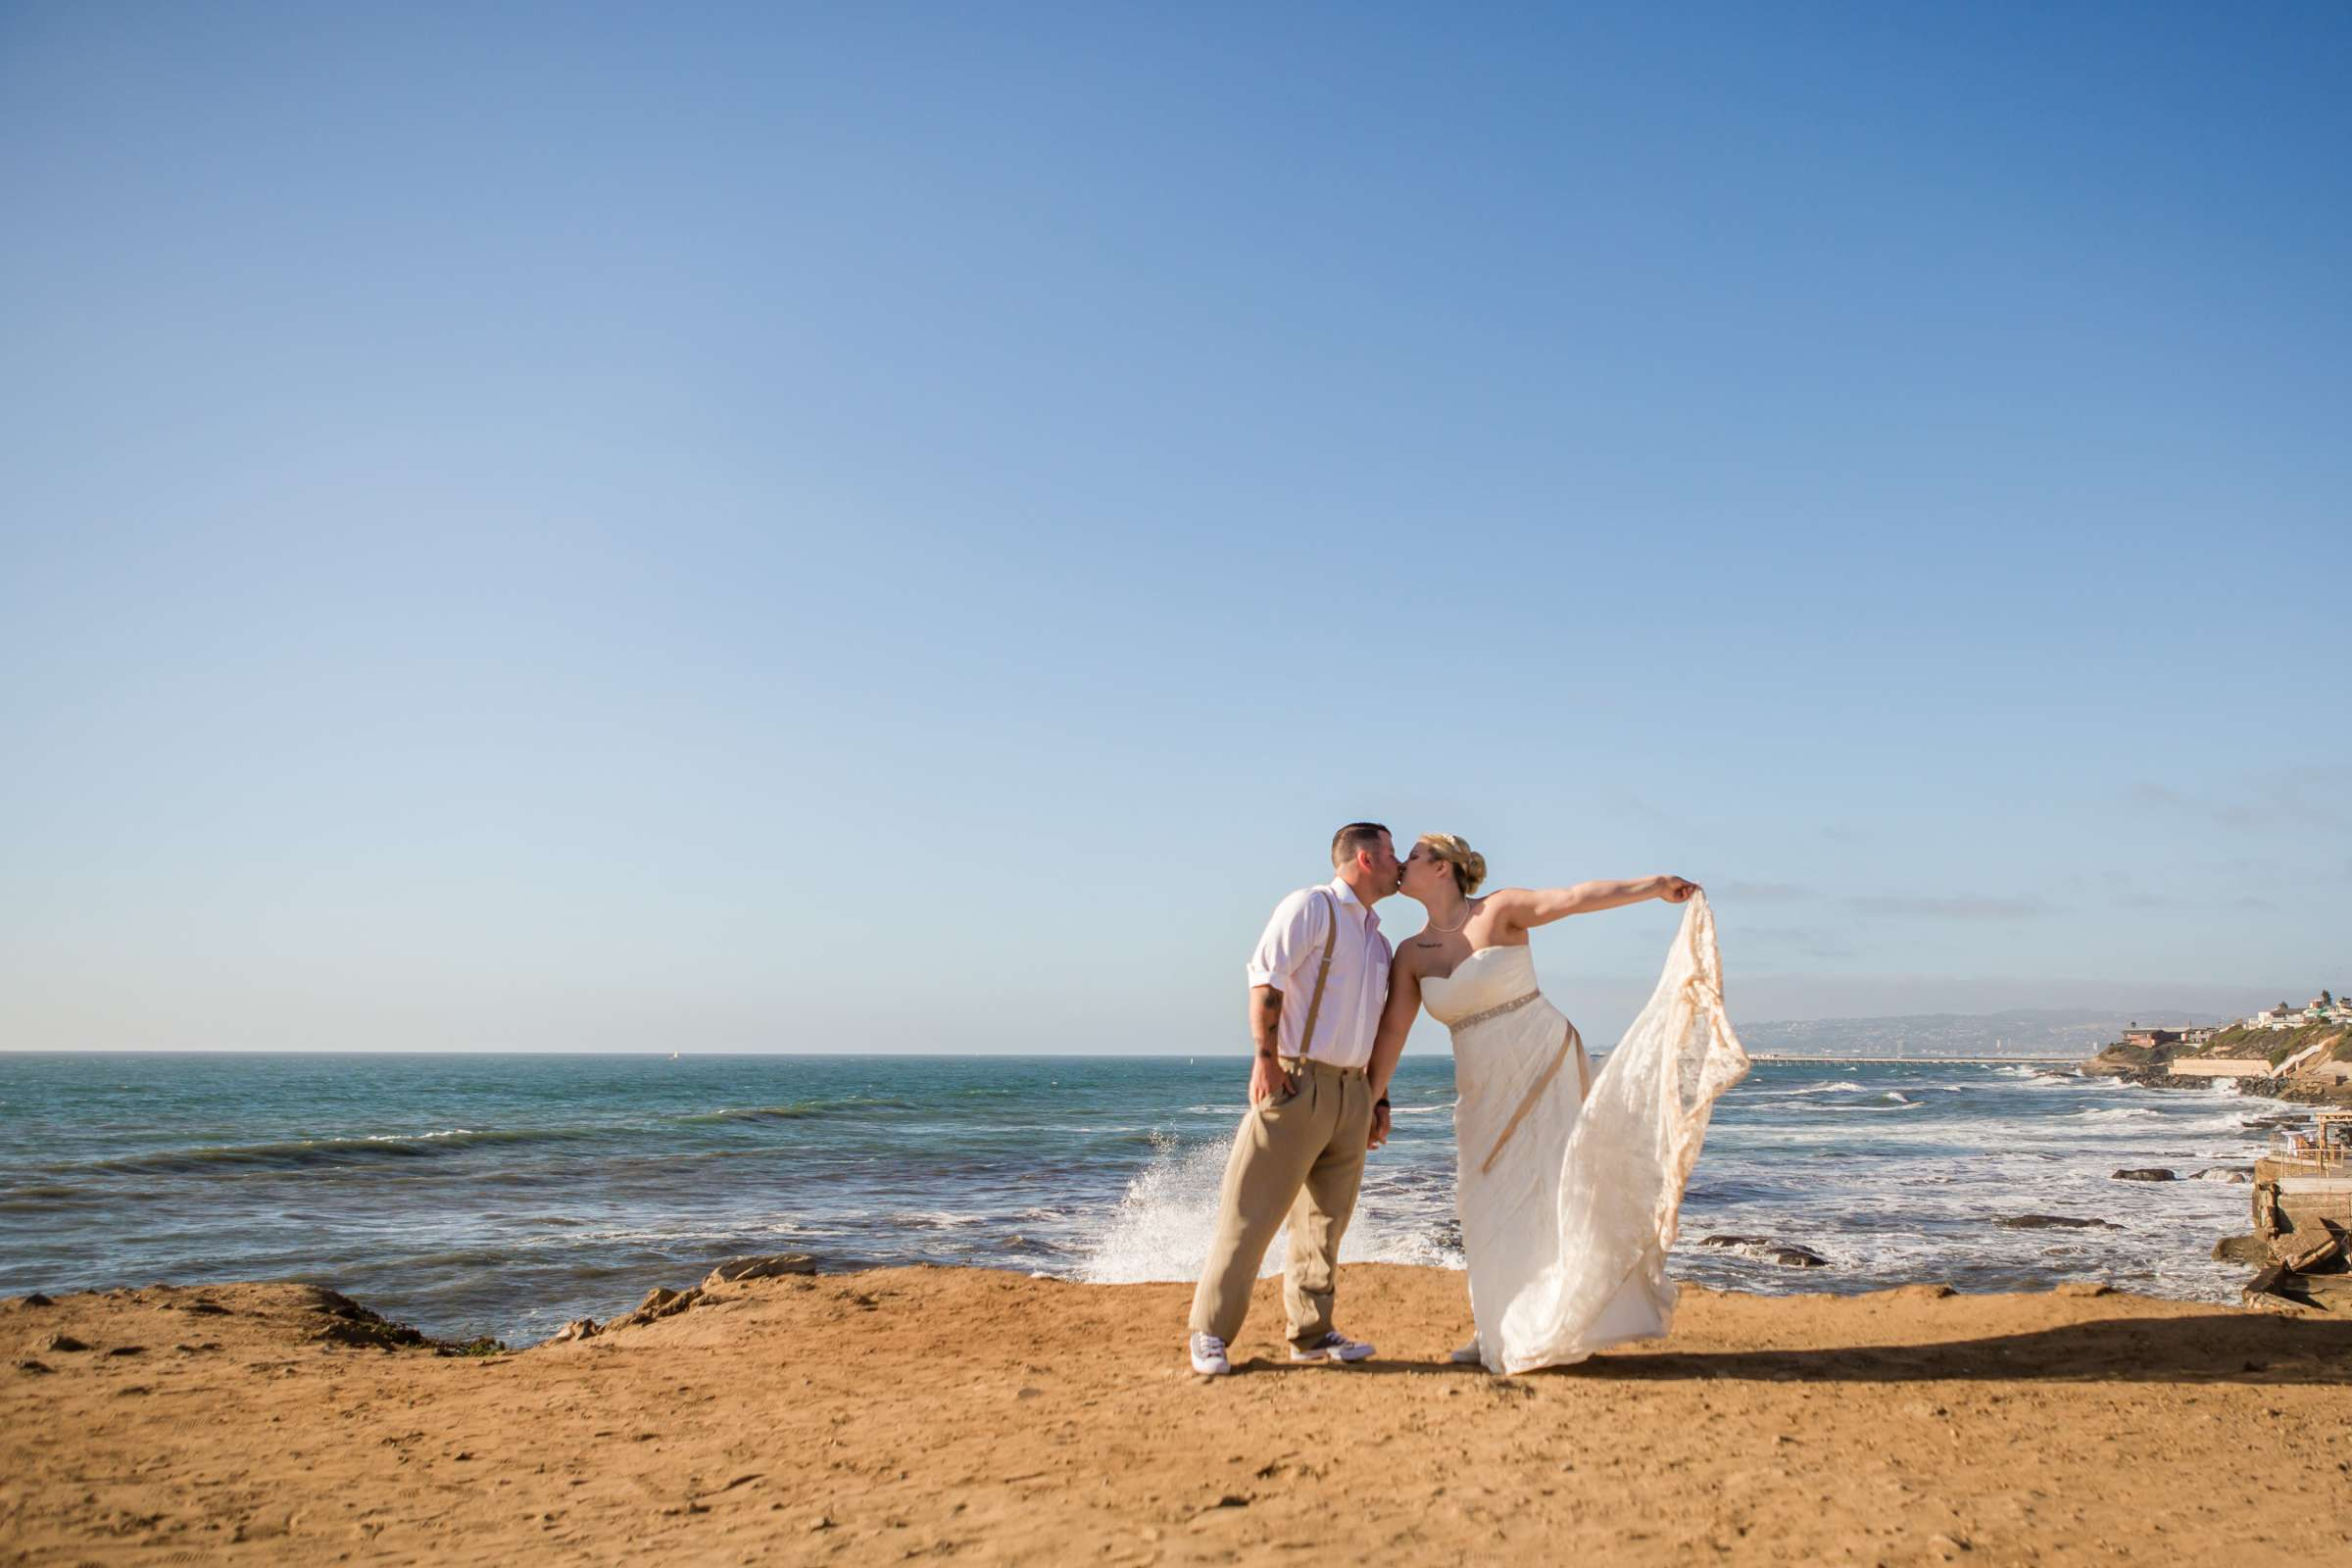 The Inn at Sunset Cliffs Wedding, Melinda and Benjamin Wedding Photo #17 by True Photography